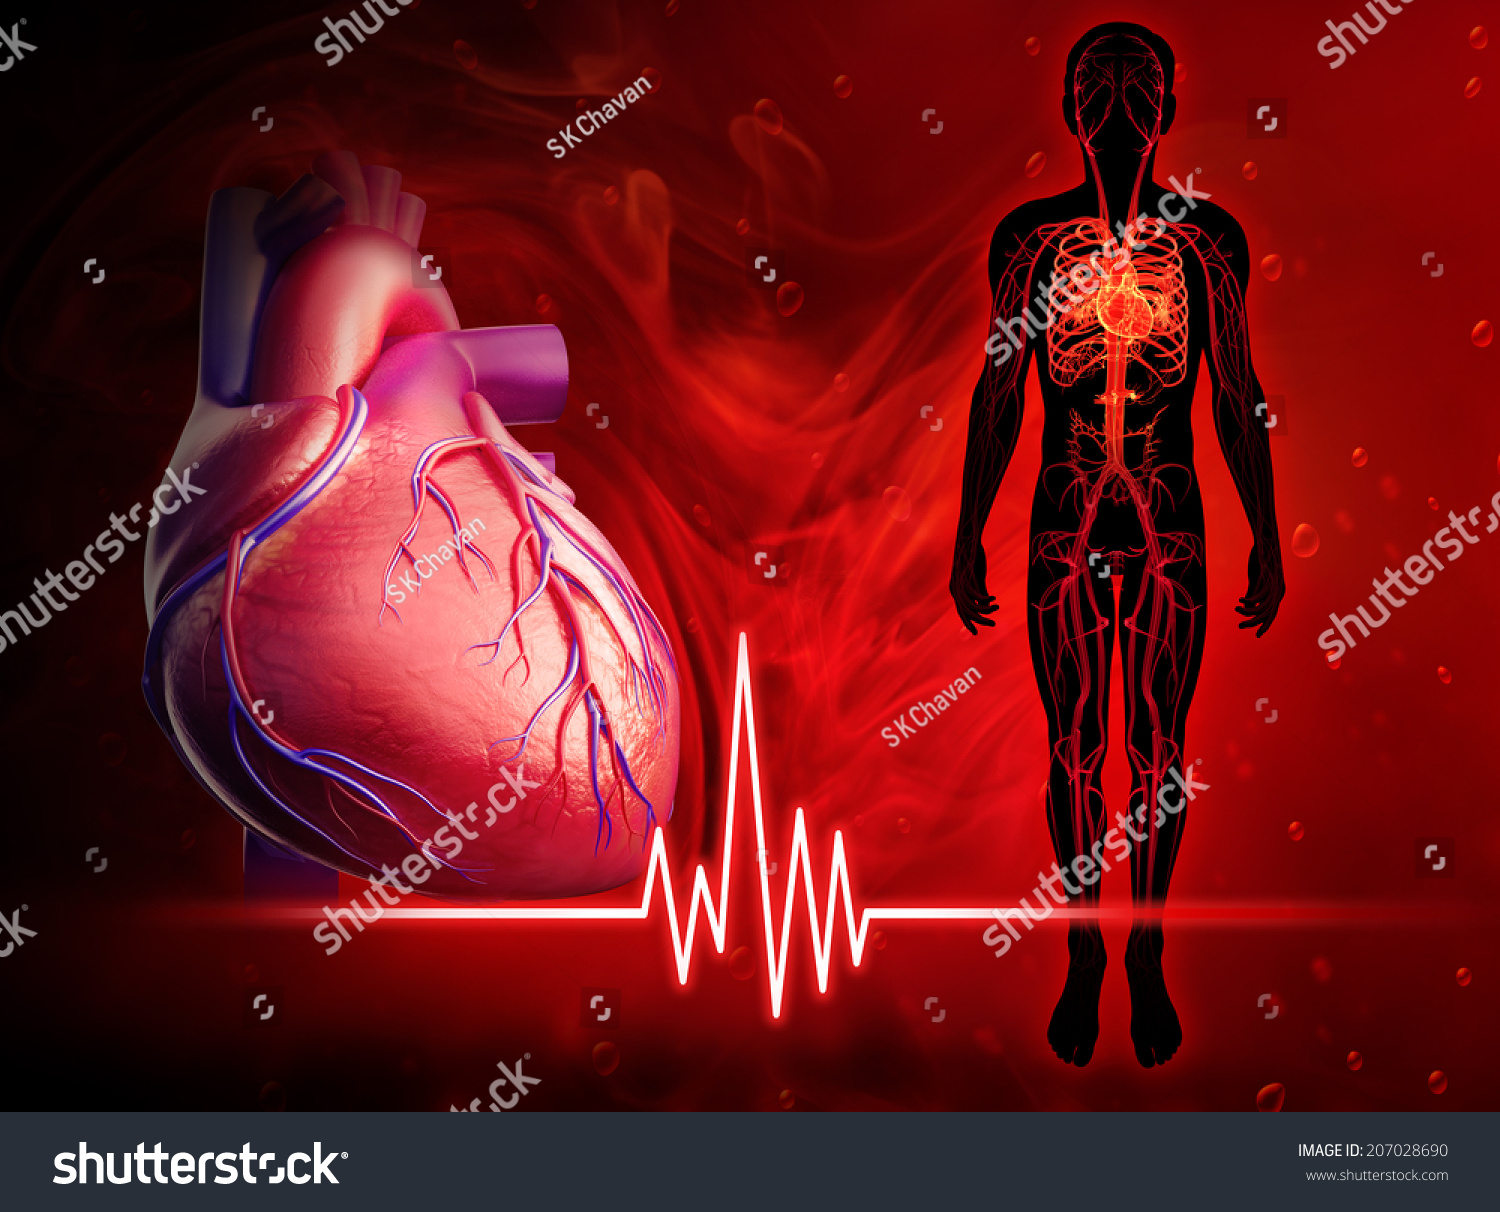 heart beat diagram 1997 saturn sc1 engine illustration of human 207028690